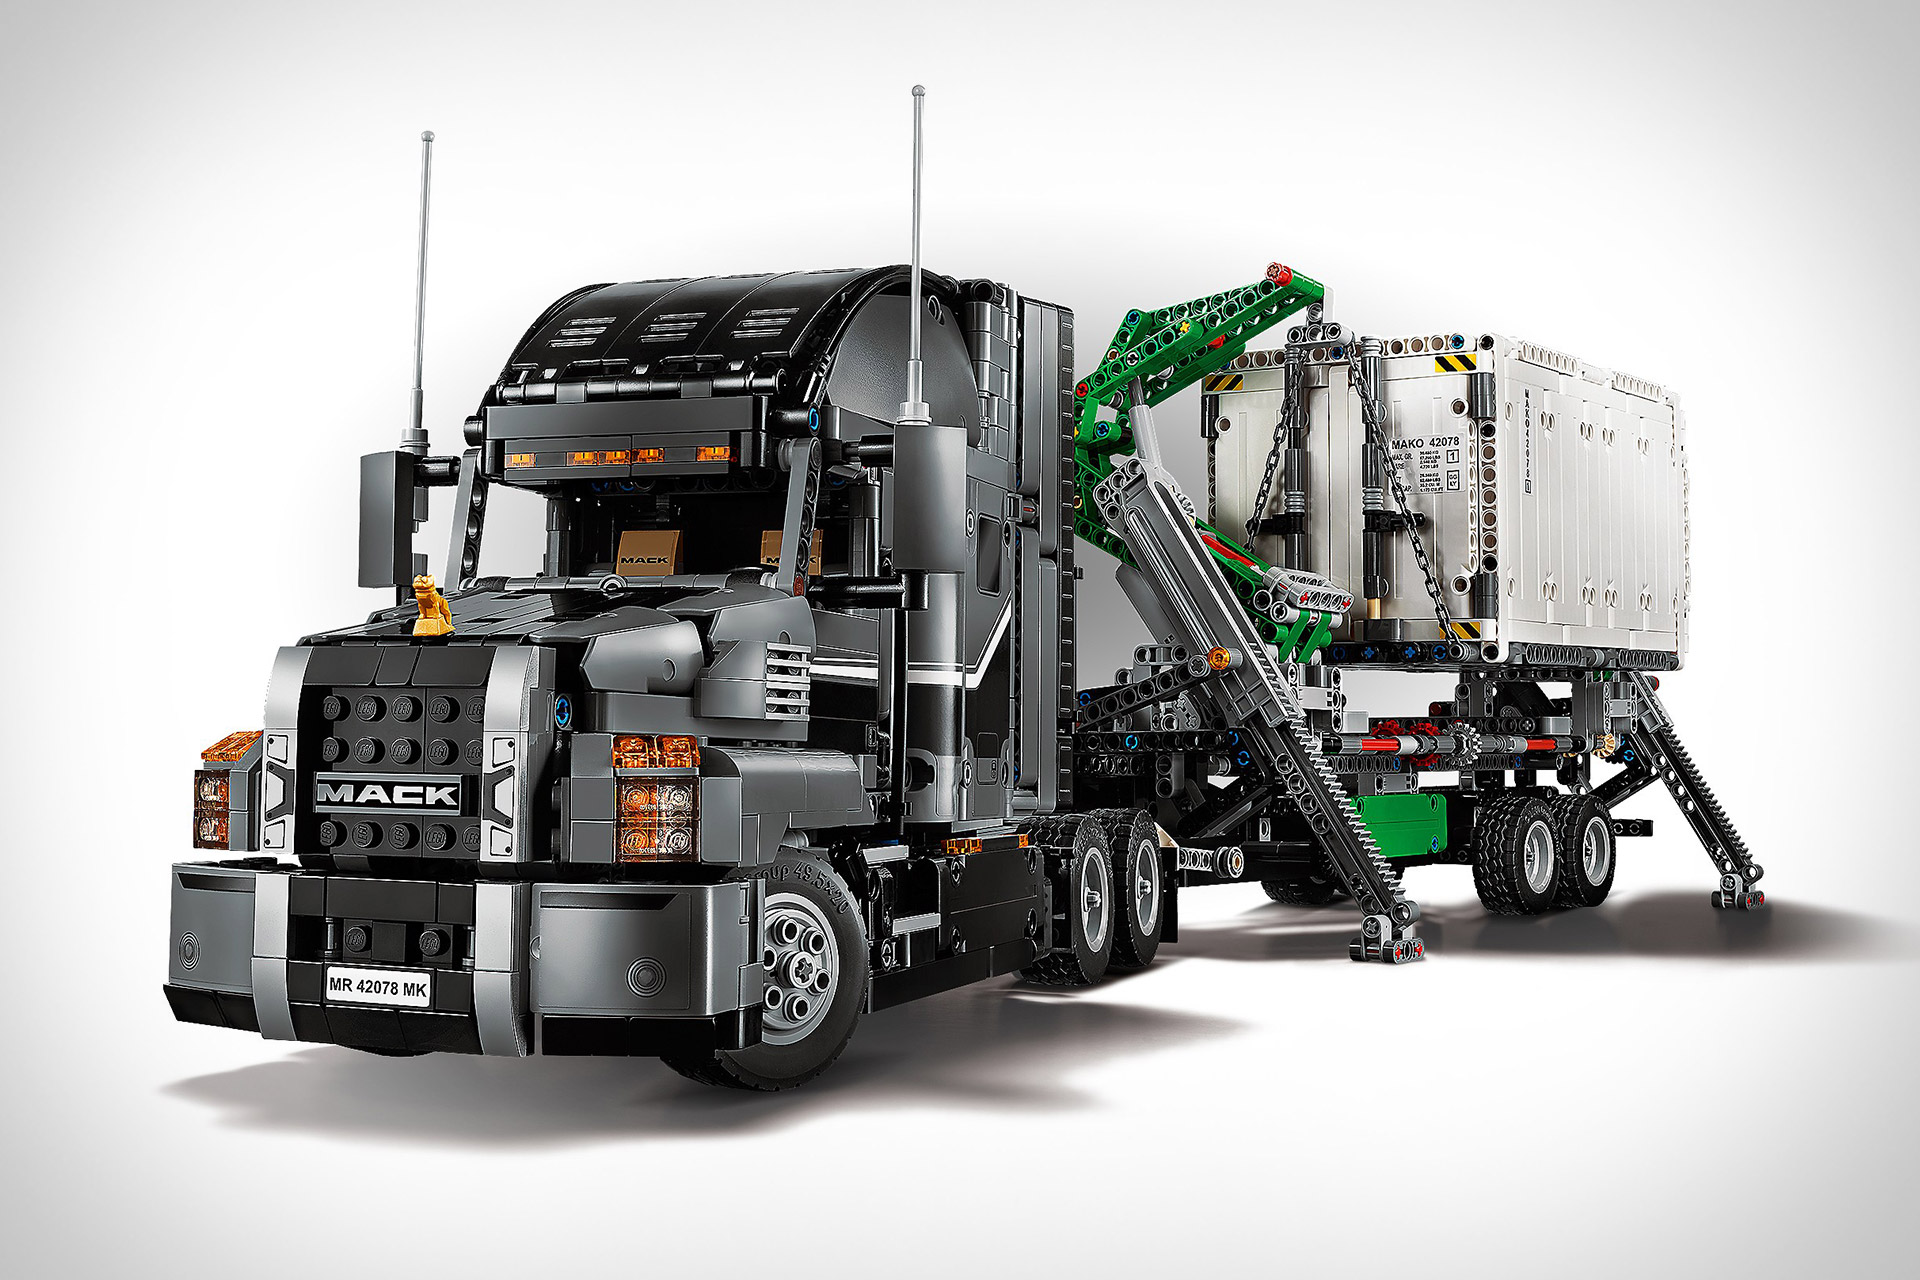 lego technic 2 in 1 mack truck uncrate. Black Bedroom Furniture Sets. Home Design Ideas